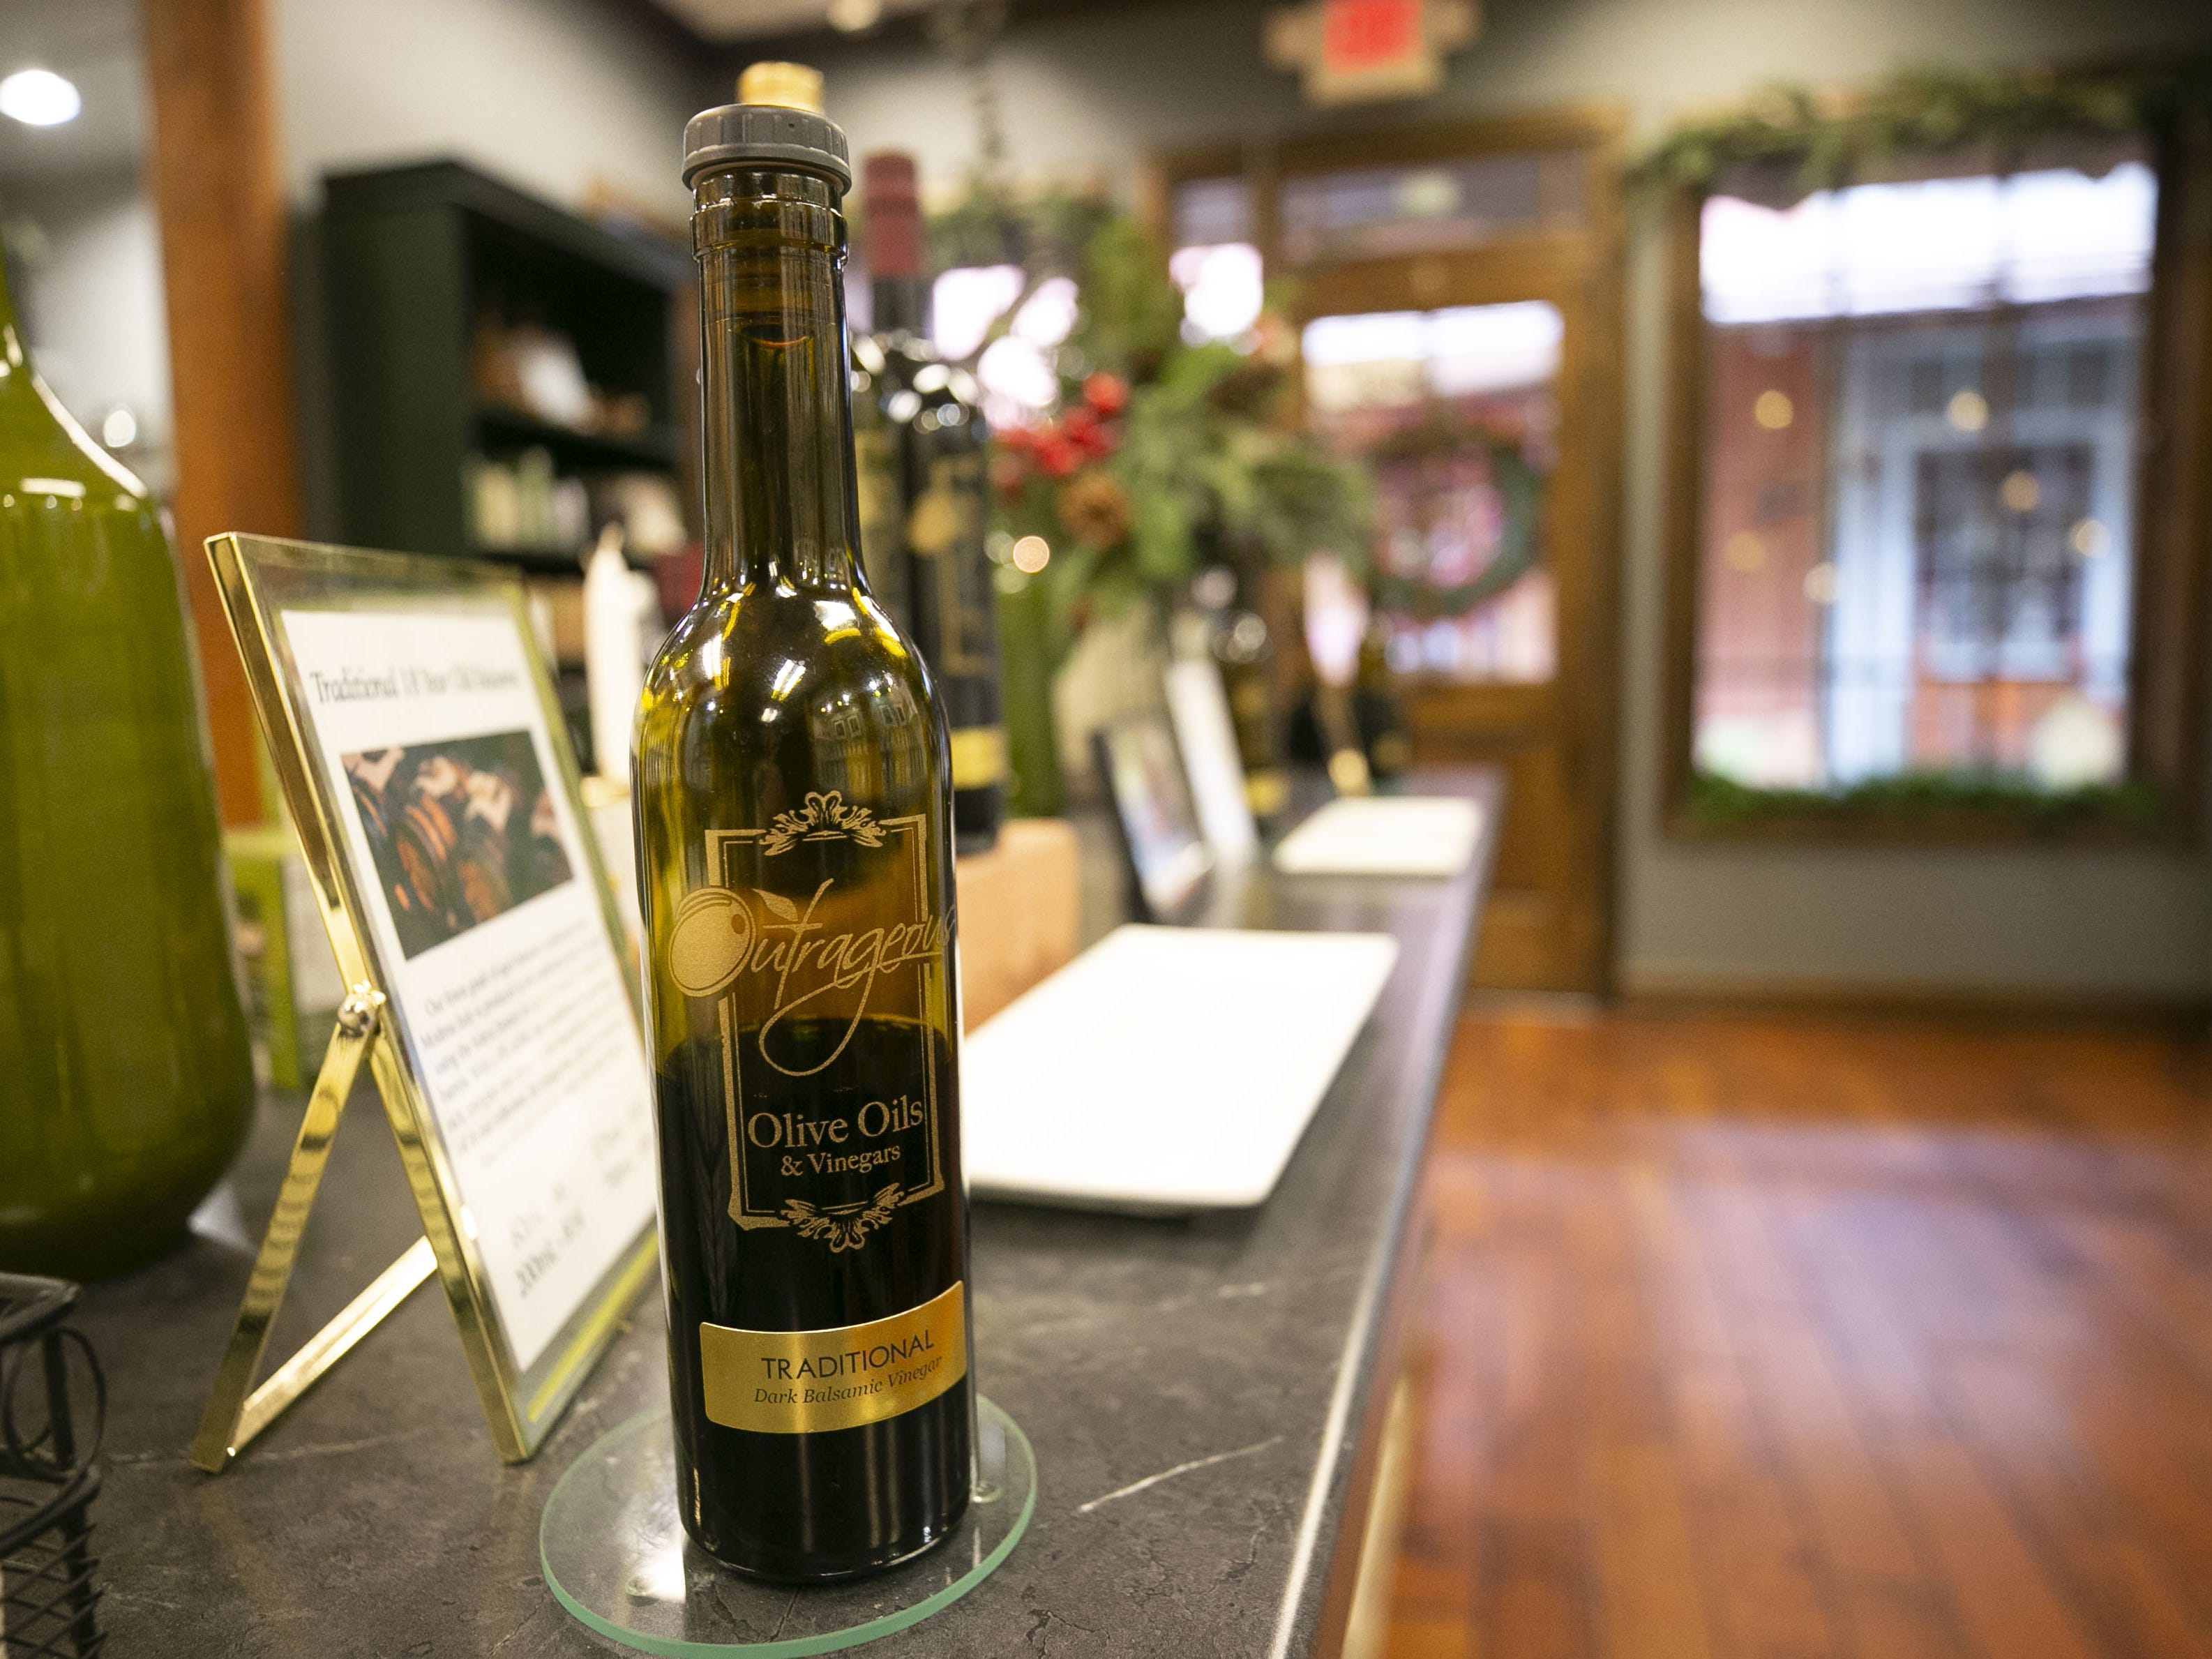 A bottle of dark balsamic vinegar at Outrageous Olive Oils & Vinegars in old town Scottsdale on Tuesday, December 11, 2018. The shop is owned by former child actor, Frankie Muniz and his fiance Paige Price.